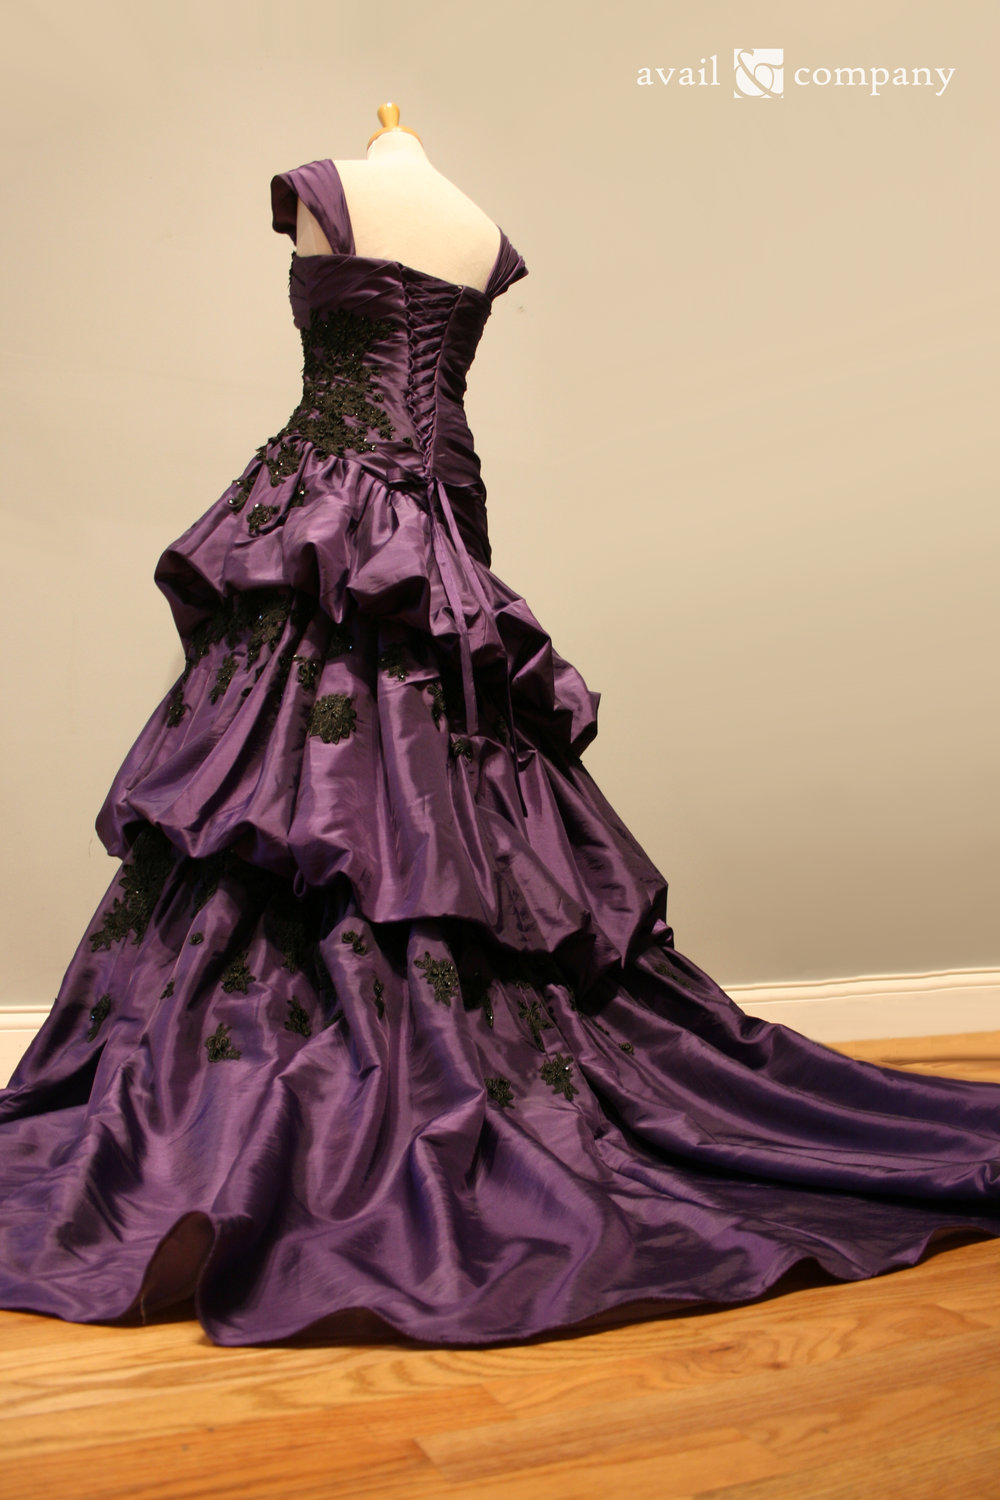 !Purple Wedding Dress Gothic Black Lace 007-0008.jpg